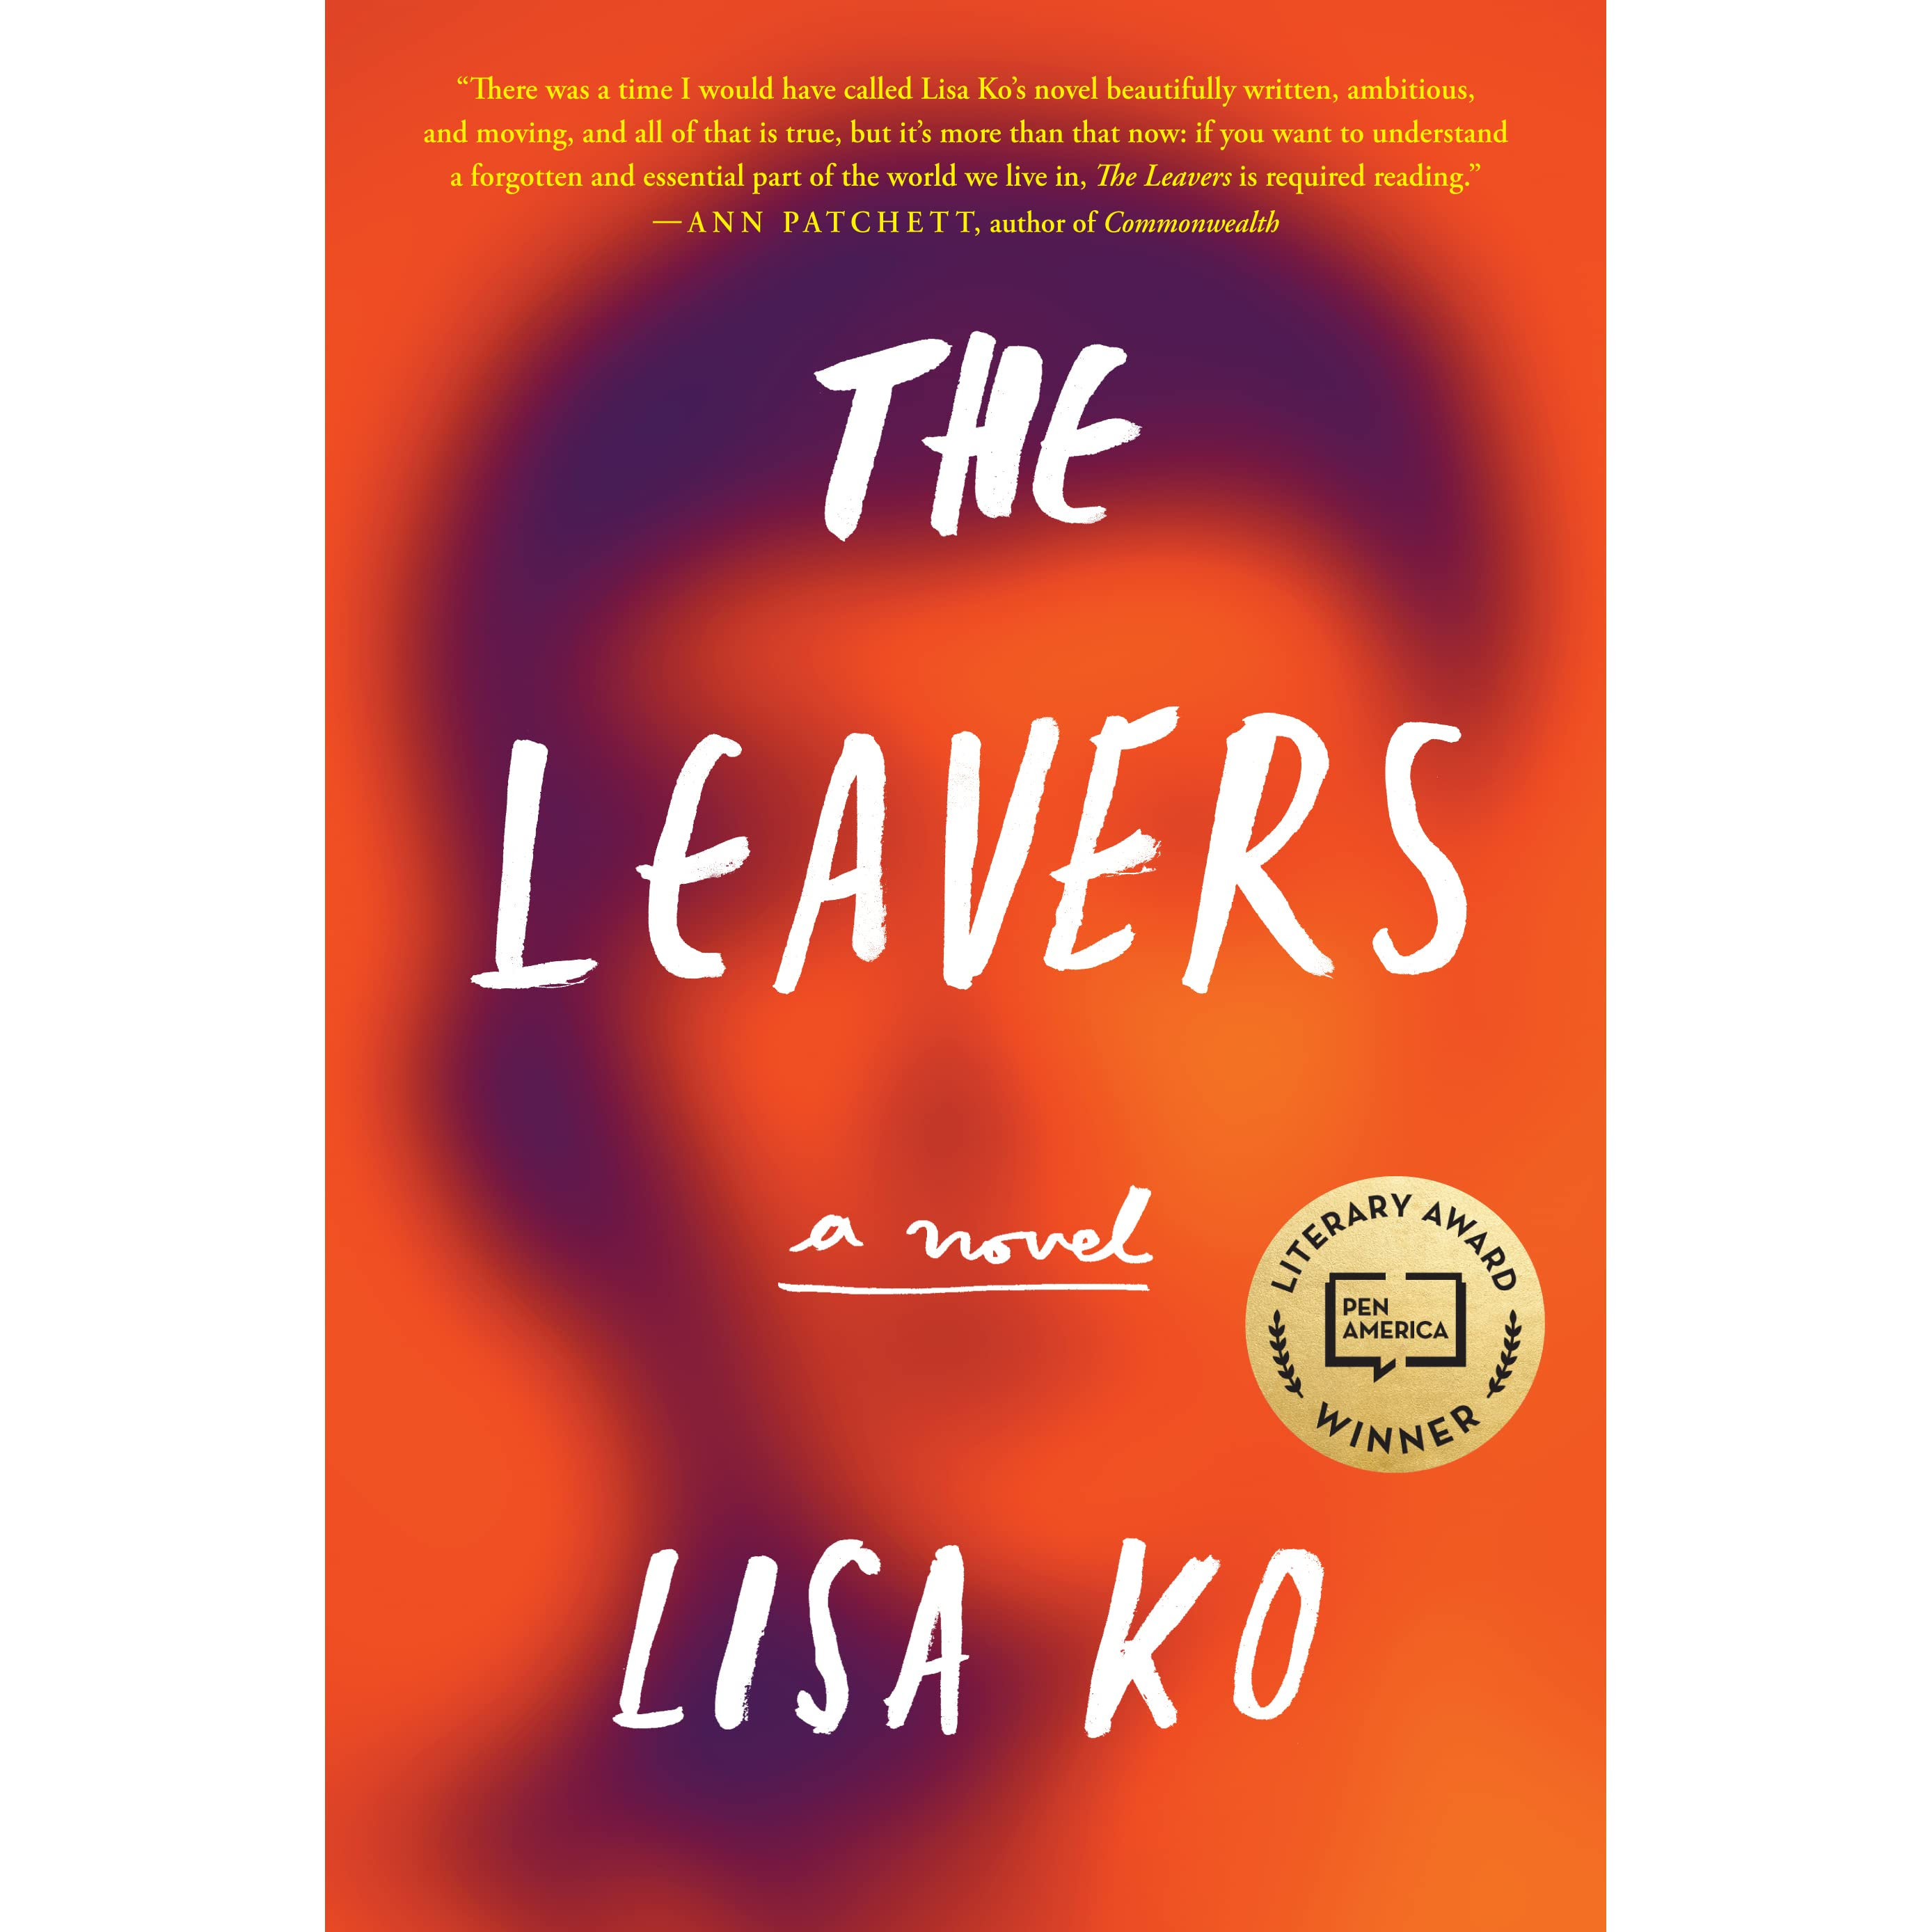 Leavers Book Cover Ideas : The leavers by lisa ko — reviews discussion bookclubs lists